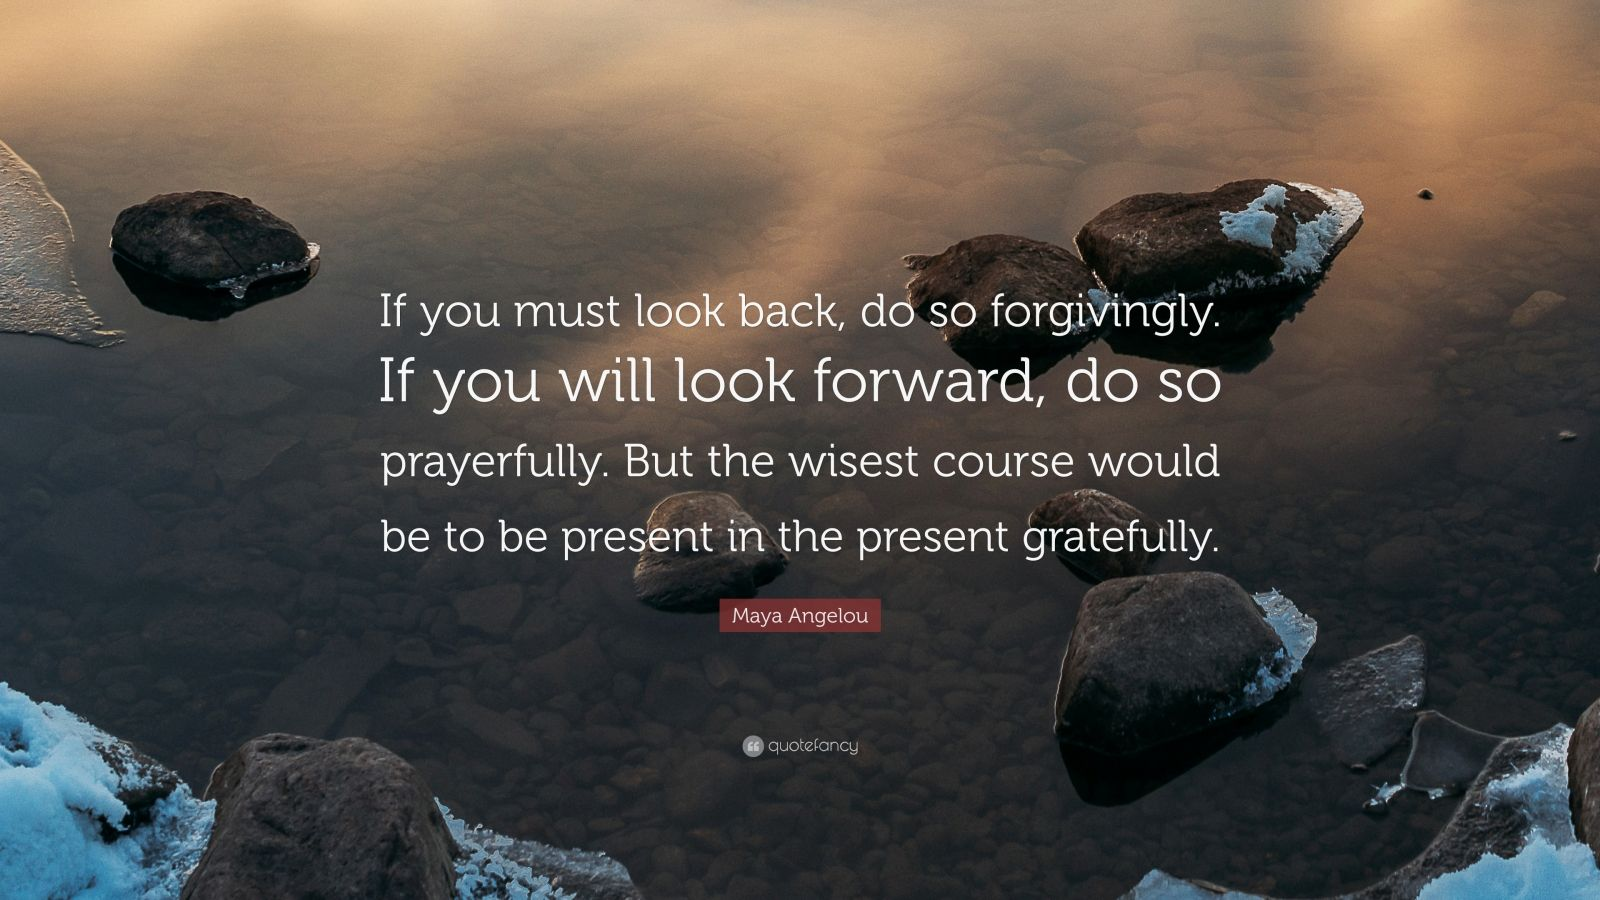 """Maya Angelou Quote: """"If you must look back, do so forgivingly. If you will look forward, do so prayerfully. But the wisest course would be to be present in the present gratefully."""""""